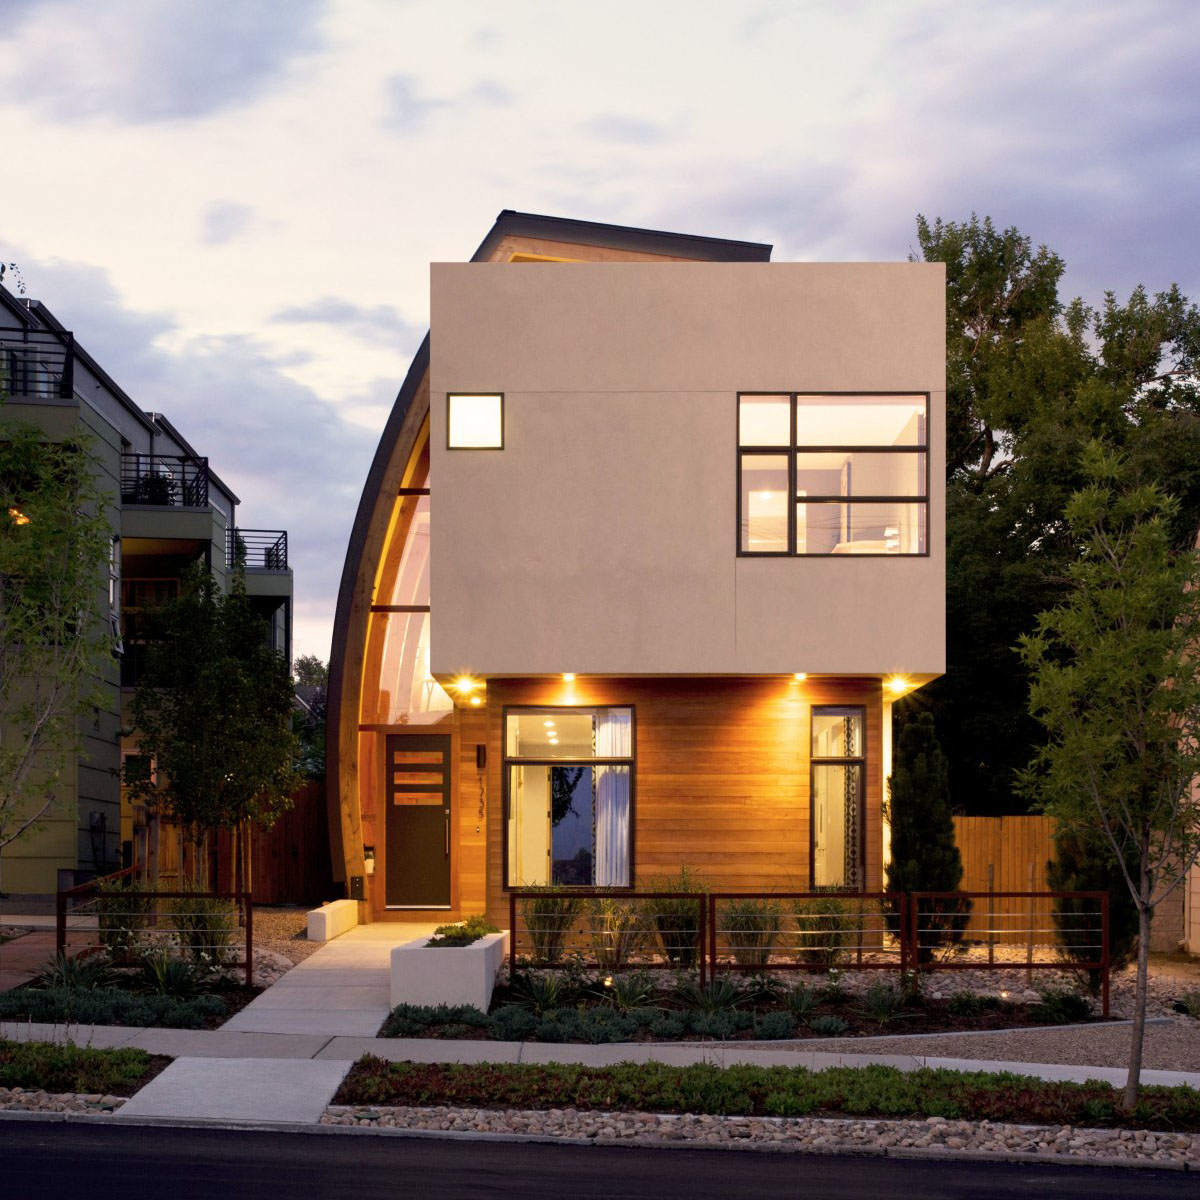 Inspiring urban infill with sun catching curve metal Modern house architecture wikipedia